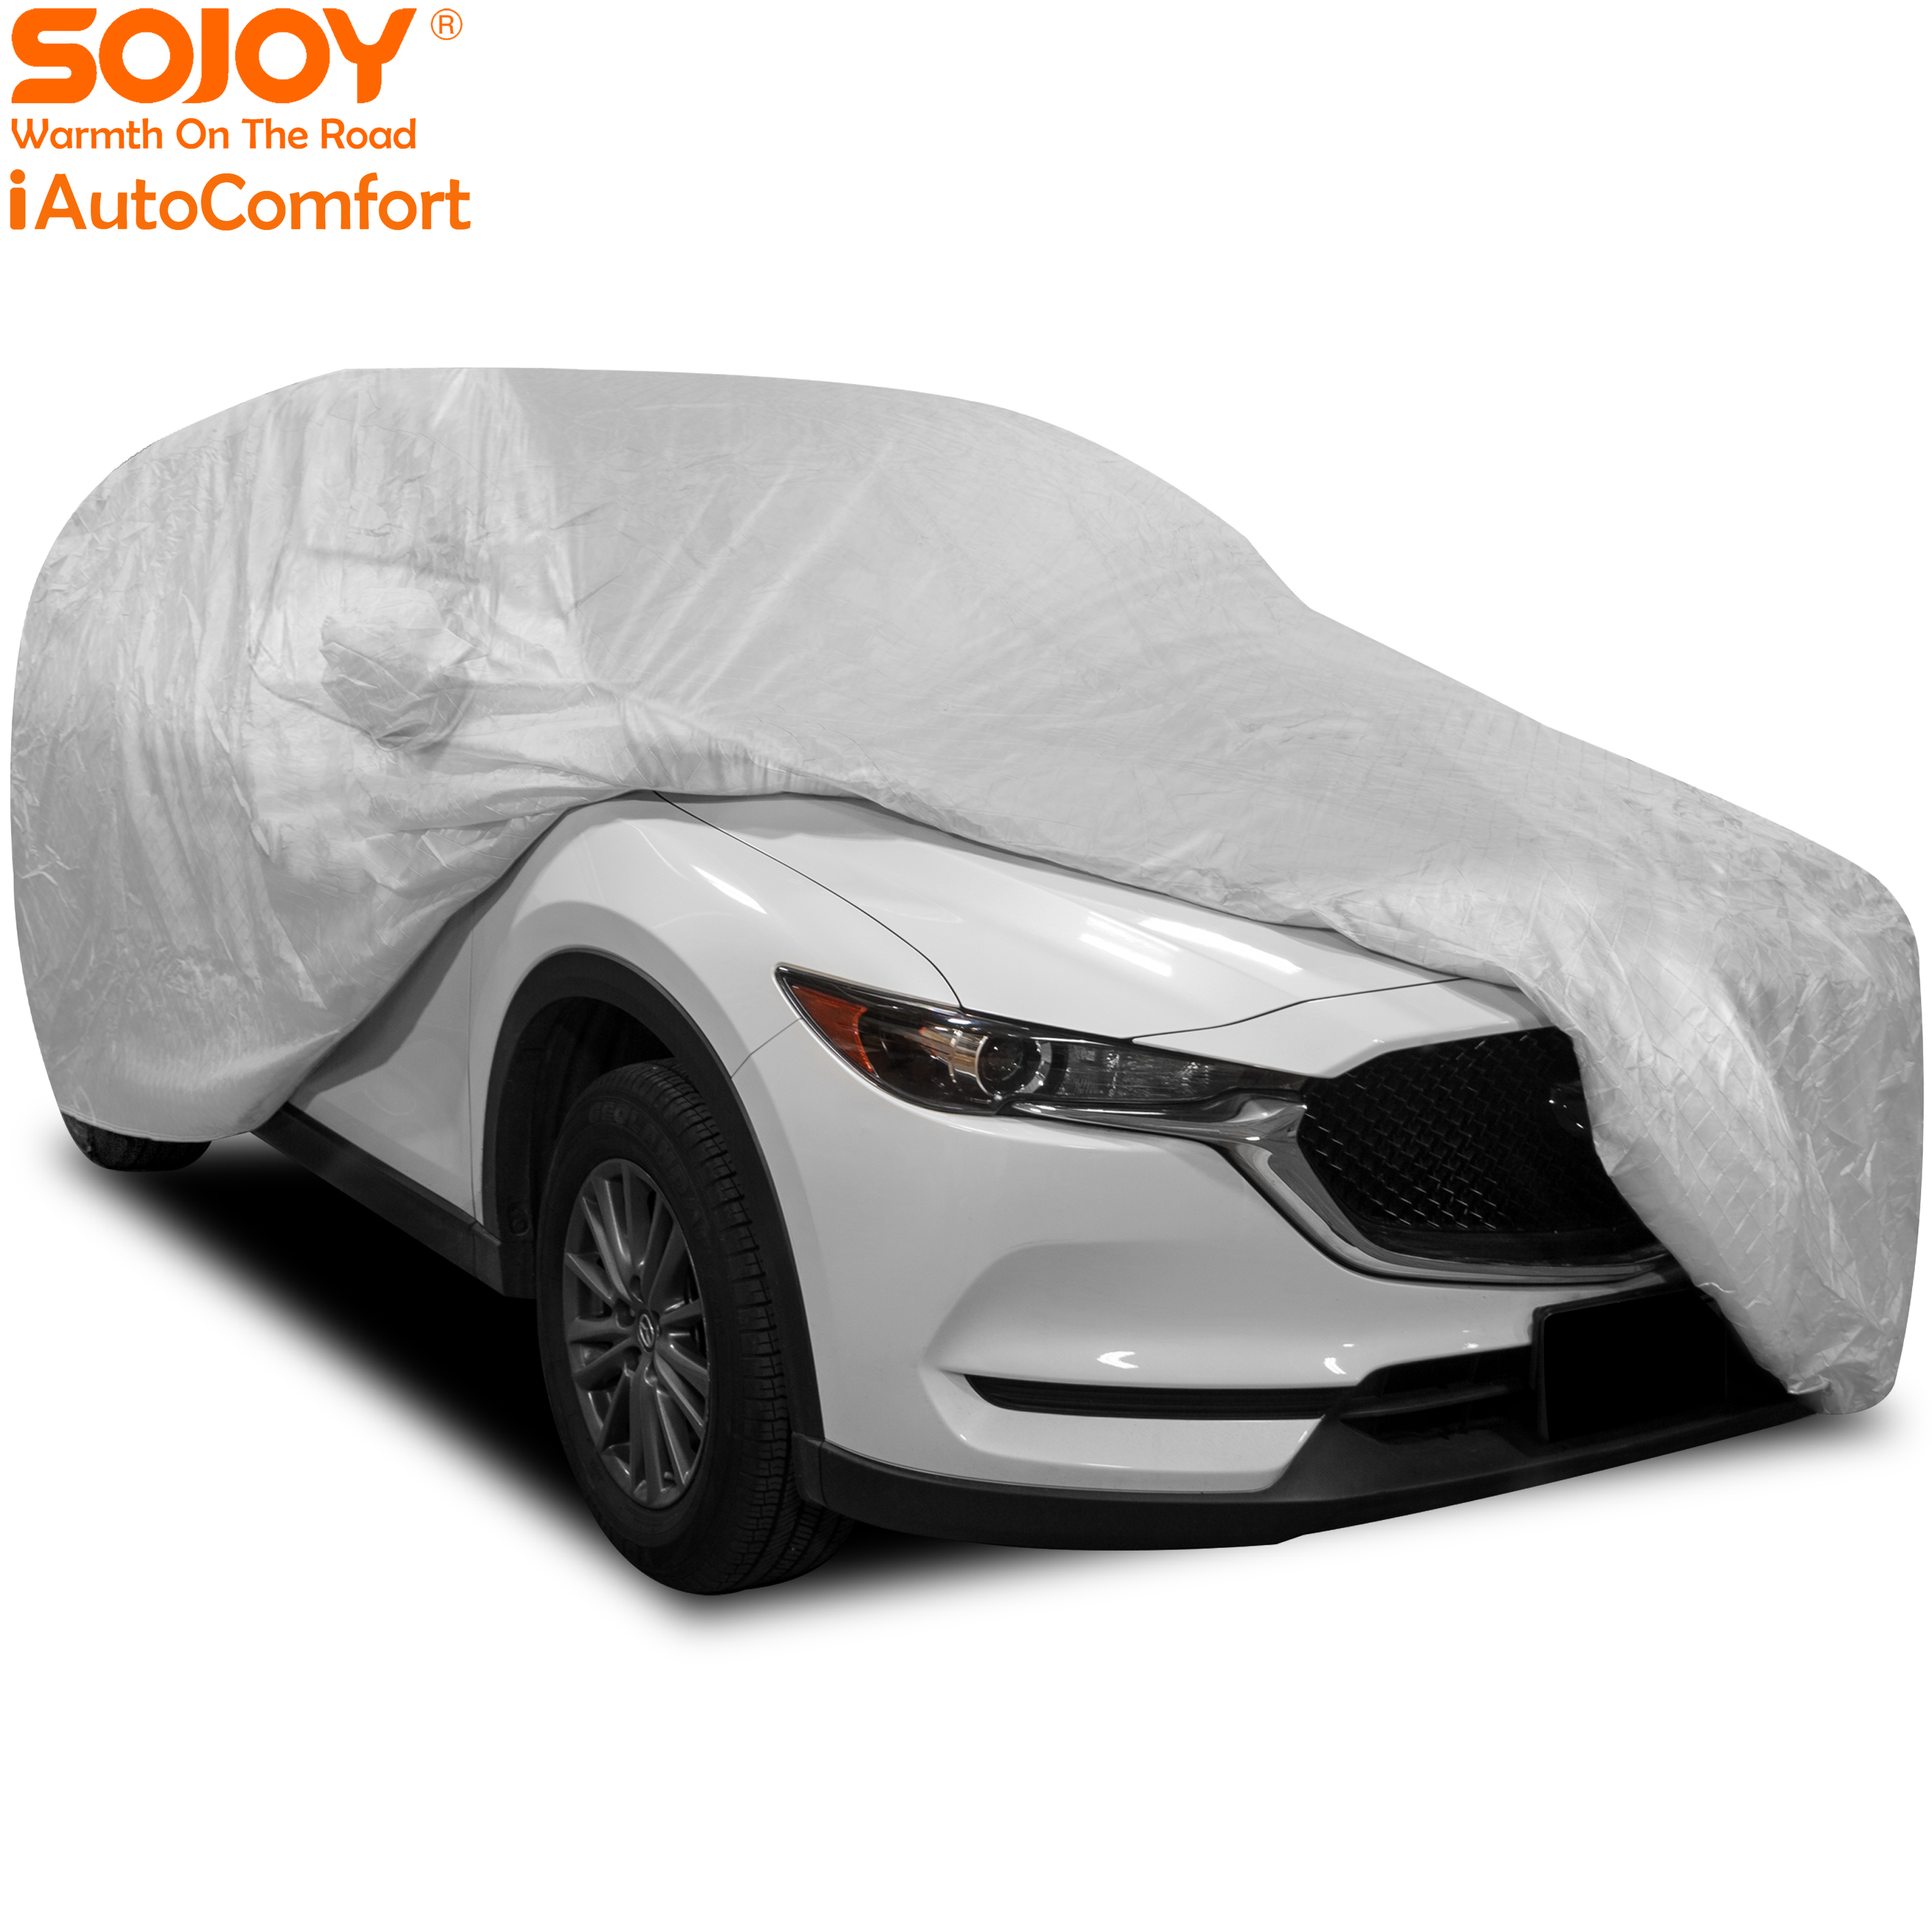 Hail Car Cover Heavy Duty Full Vehicle Cover All Weather Waterproof Scratchproof